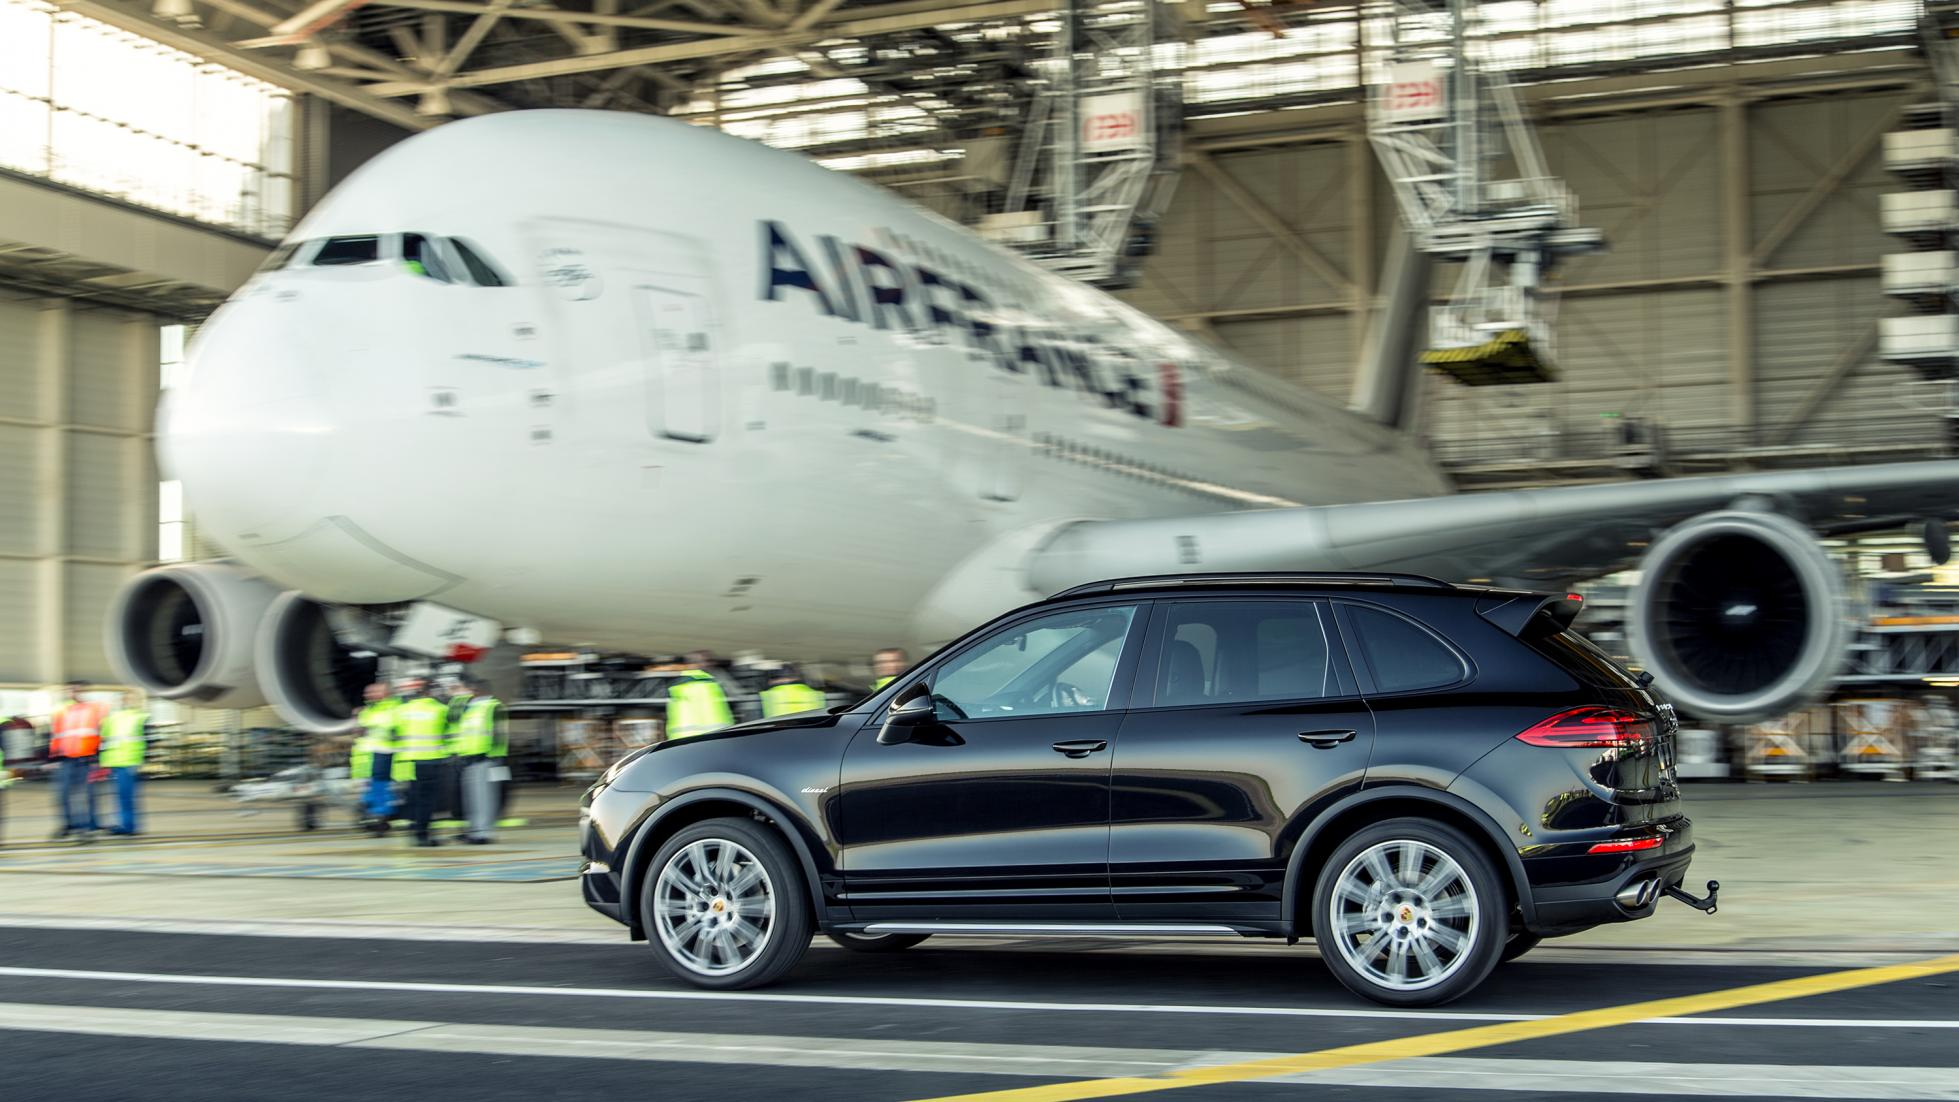 Porsche Cayenne S and the Heaviest Aircraft Airbus A380